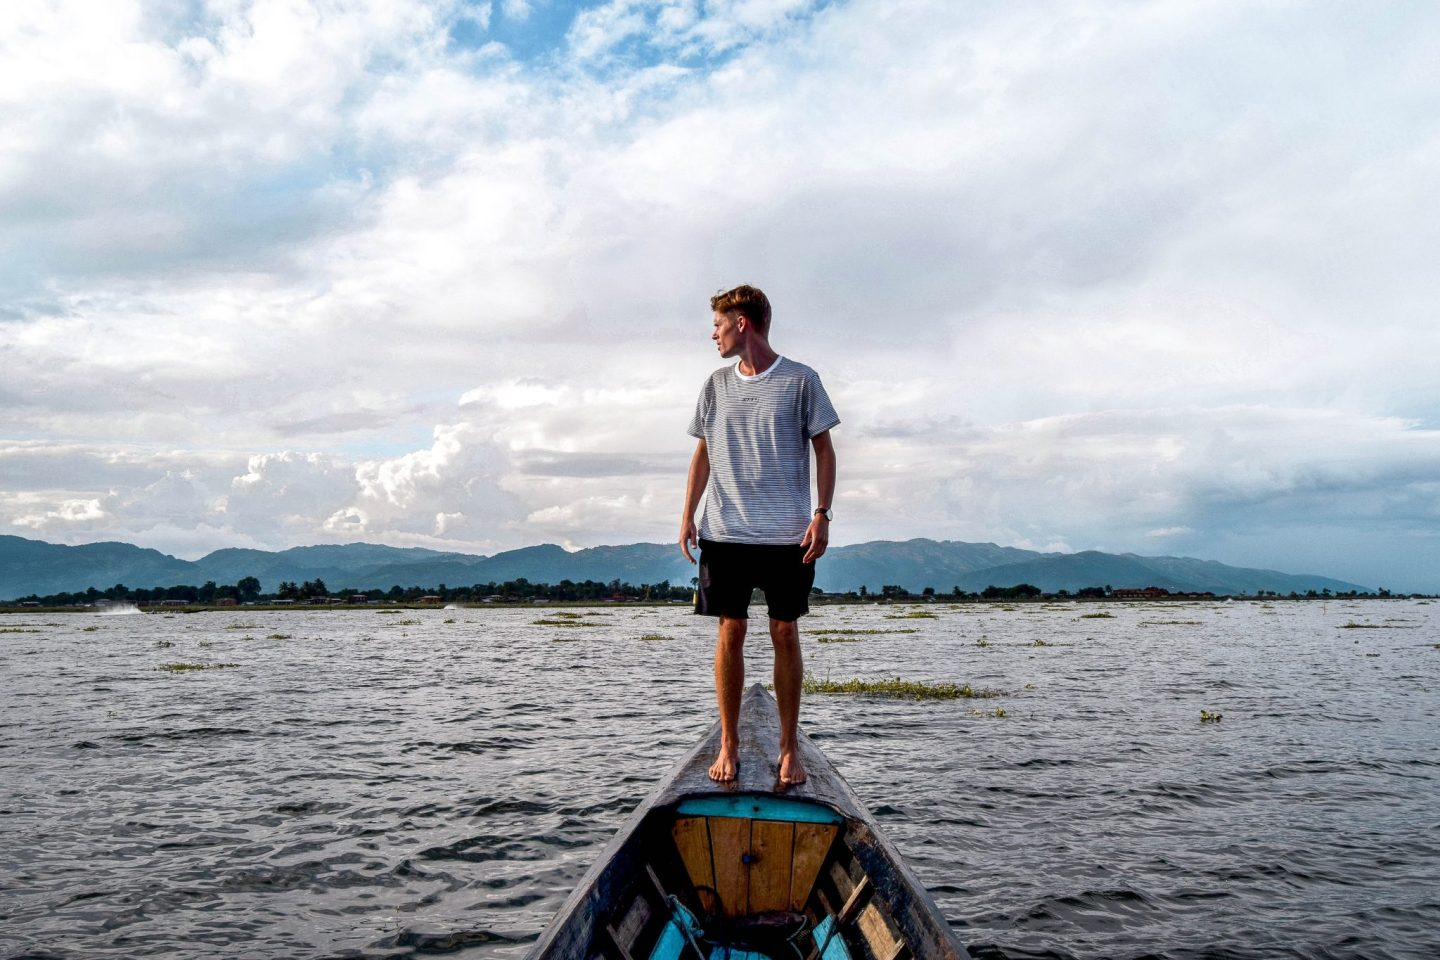 Wanderers & Warriors - Charlie & Lauren UK Travel Couple - Things To Do In Inle Lake - Inle Lake Tour